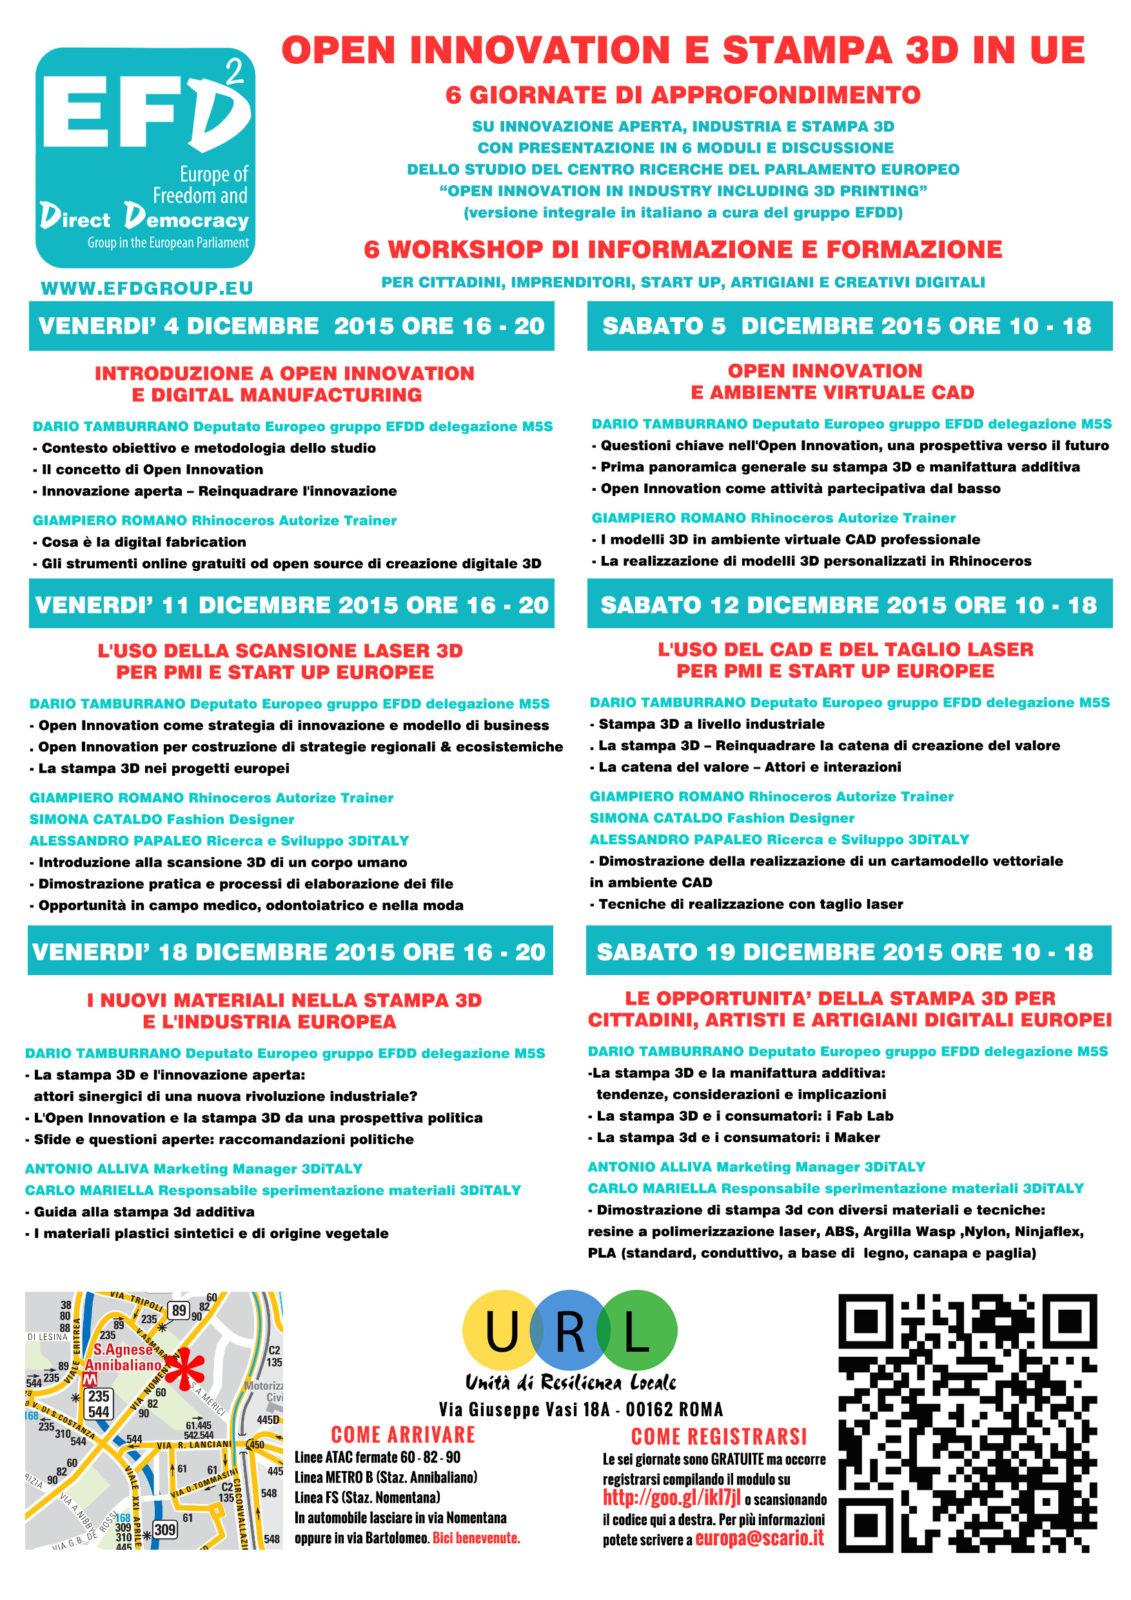 6 giornate di Open Innovation e 3D PRINTING